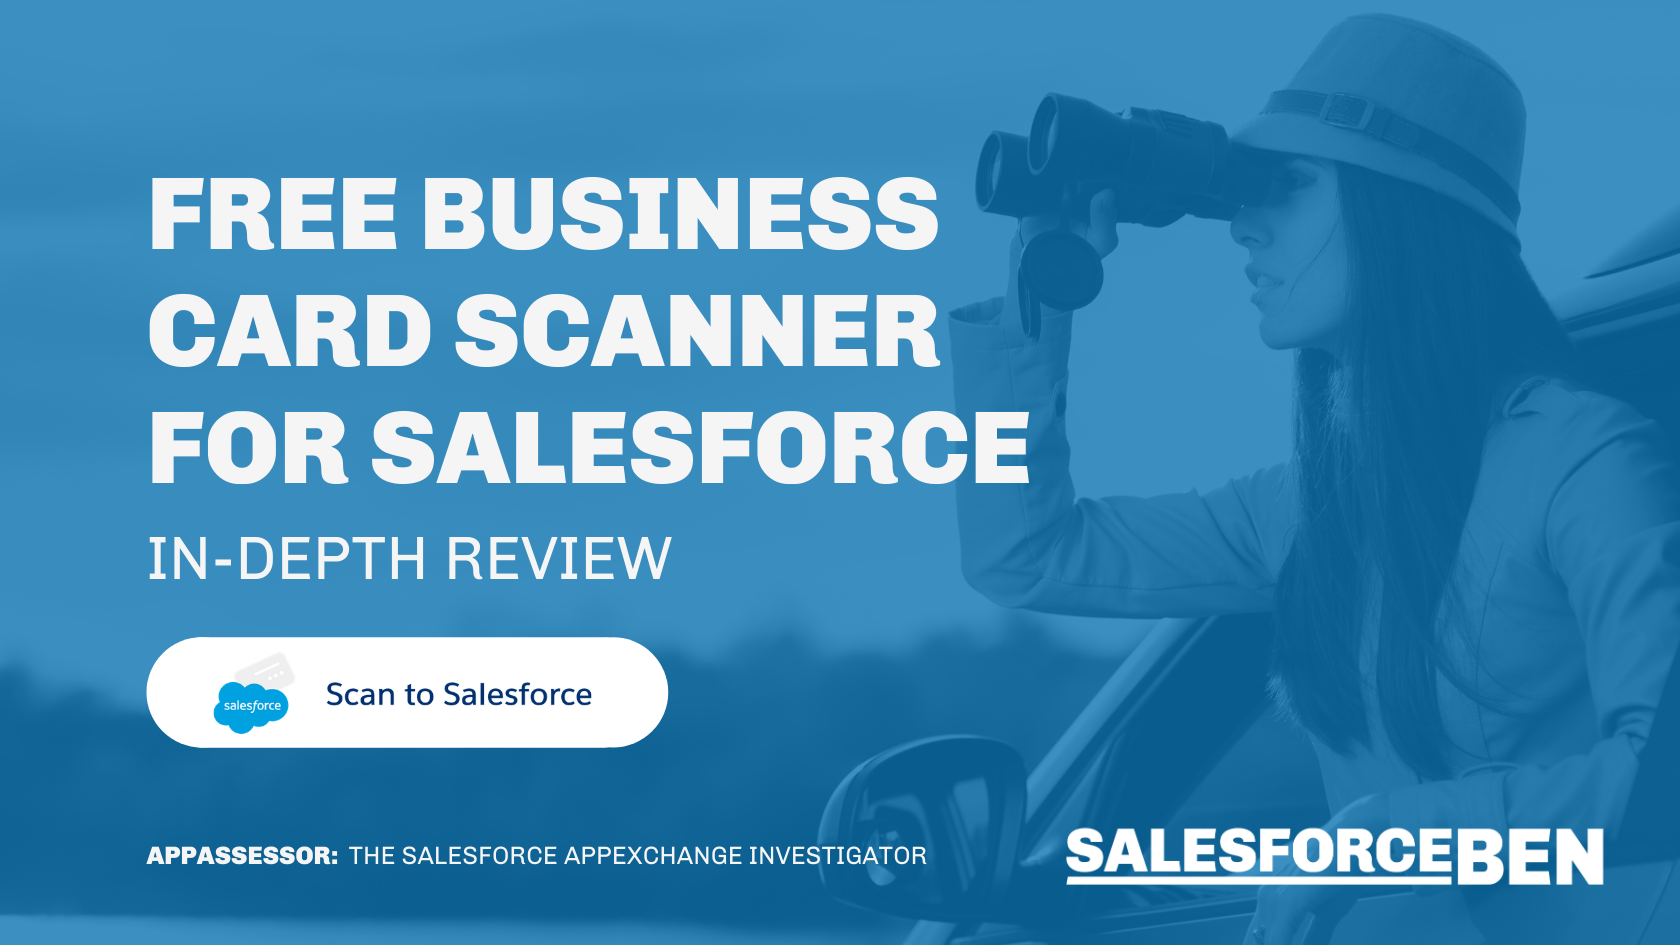 Free Business Card Scanner for Salesforce [In-Depth Review]